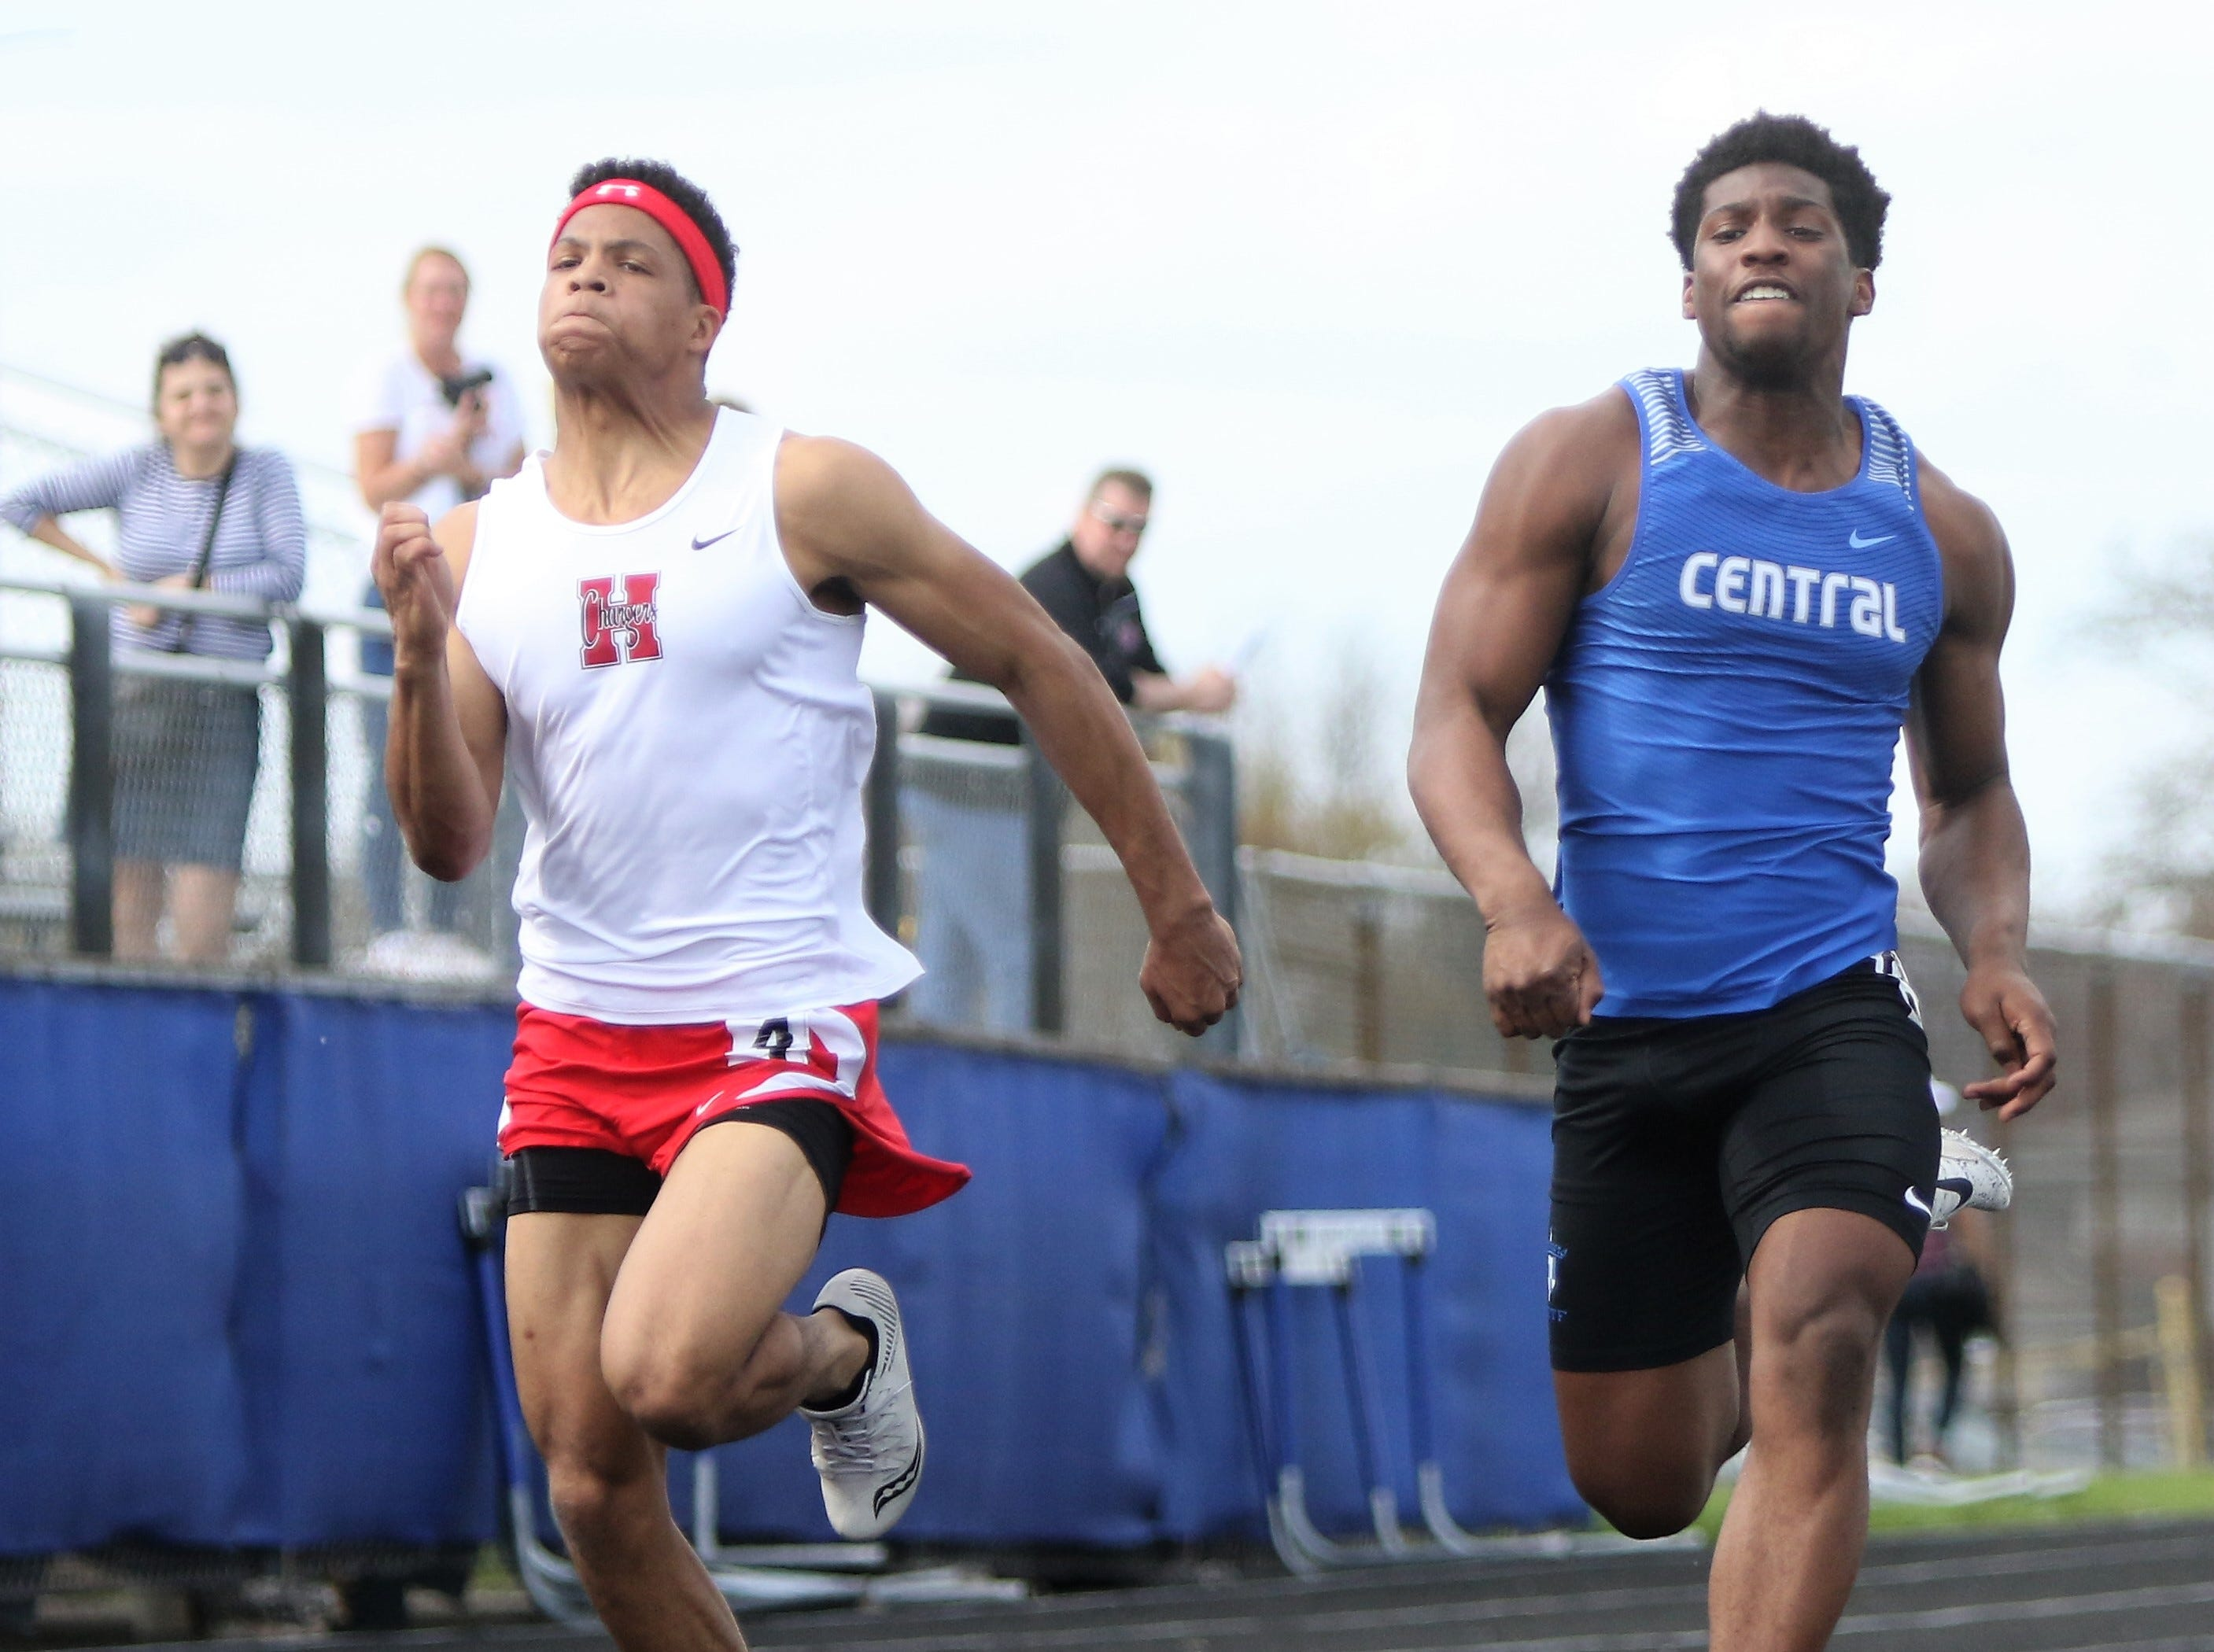 Sussex Hamilton's Josh Reindl (left) edges out Brookfield Central's Rashad Lampkin in a 100 dash heat at the Greater Metro Conference outdoor championships on May 14, 2019.